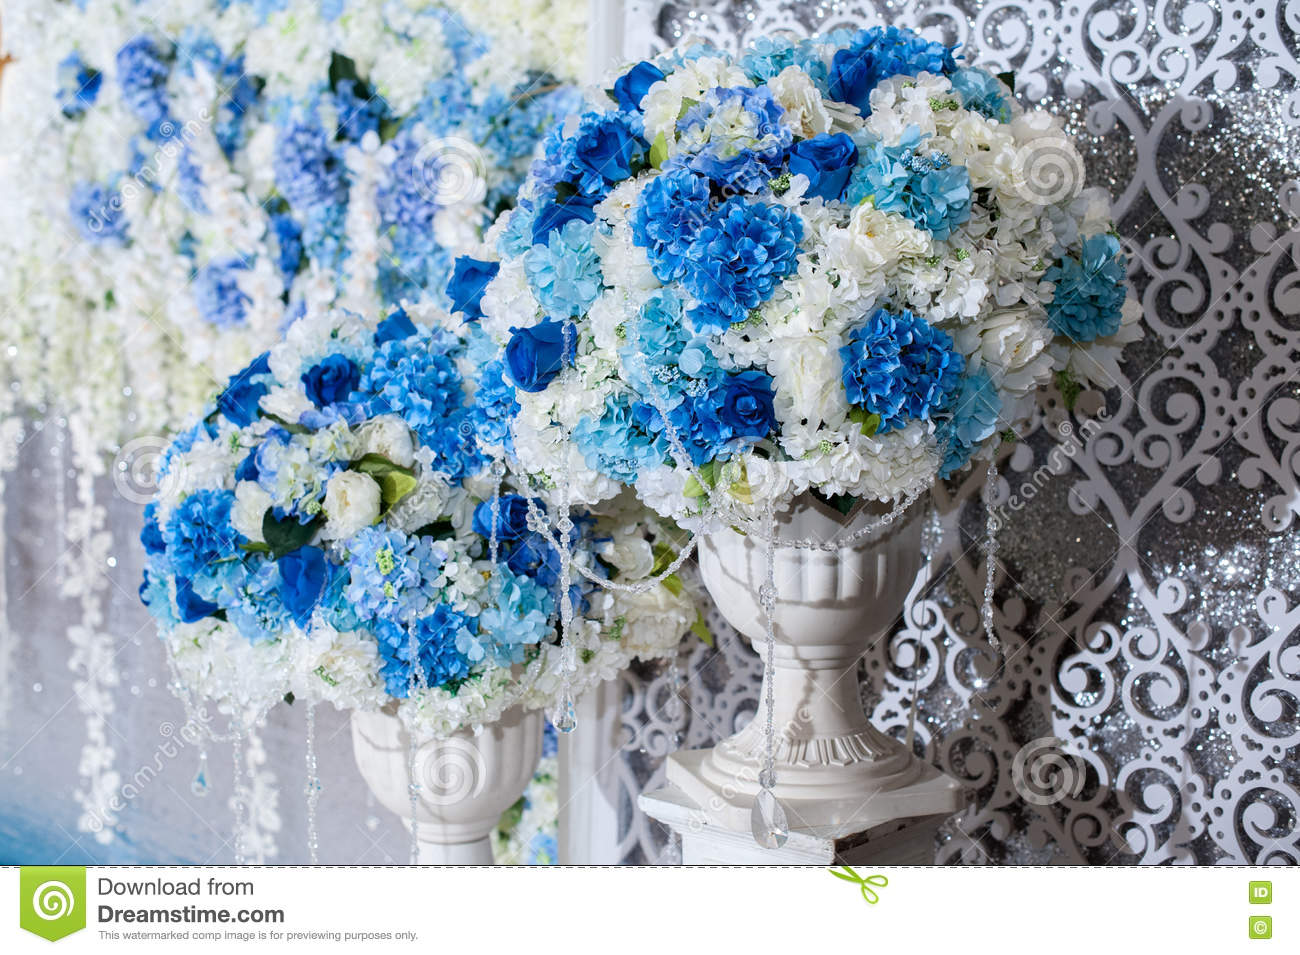 Flower on vases stand setting for decorate with wedding backdrop royalty free stock photo reviewsmspy